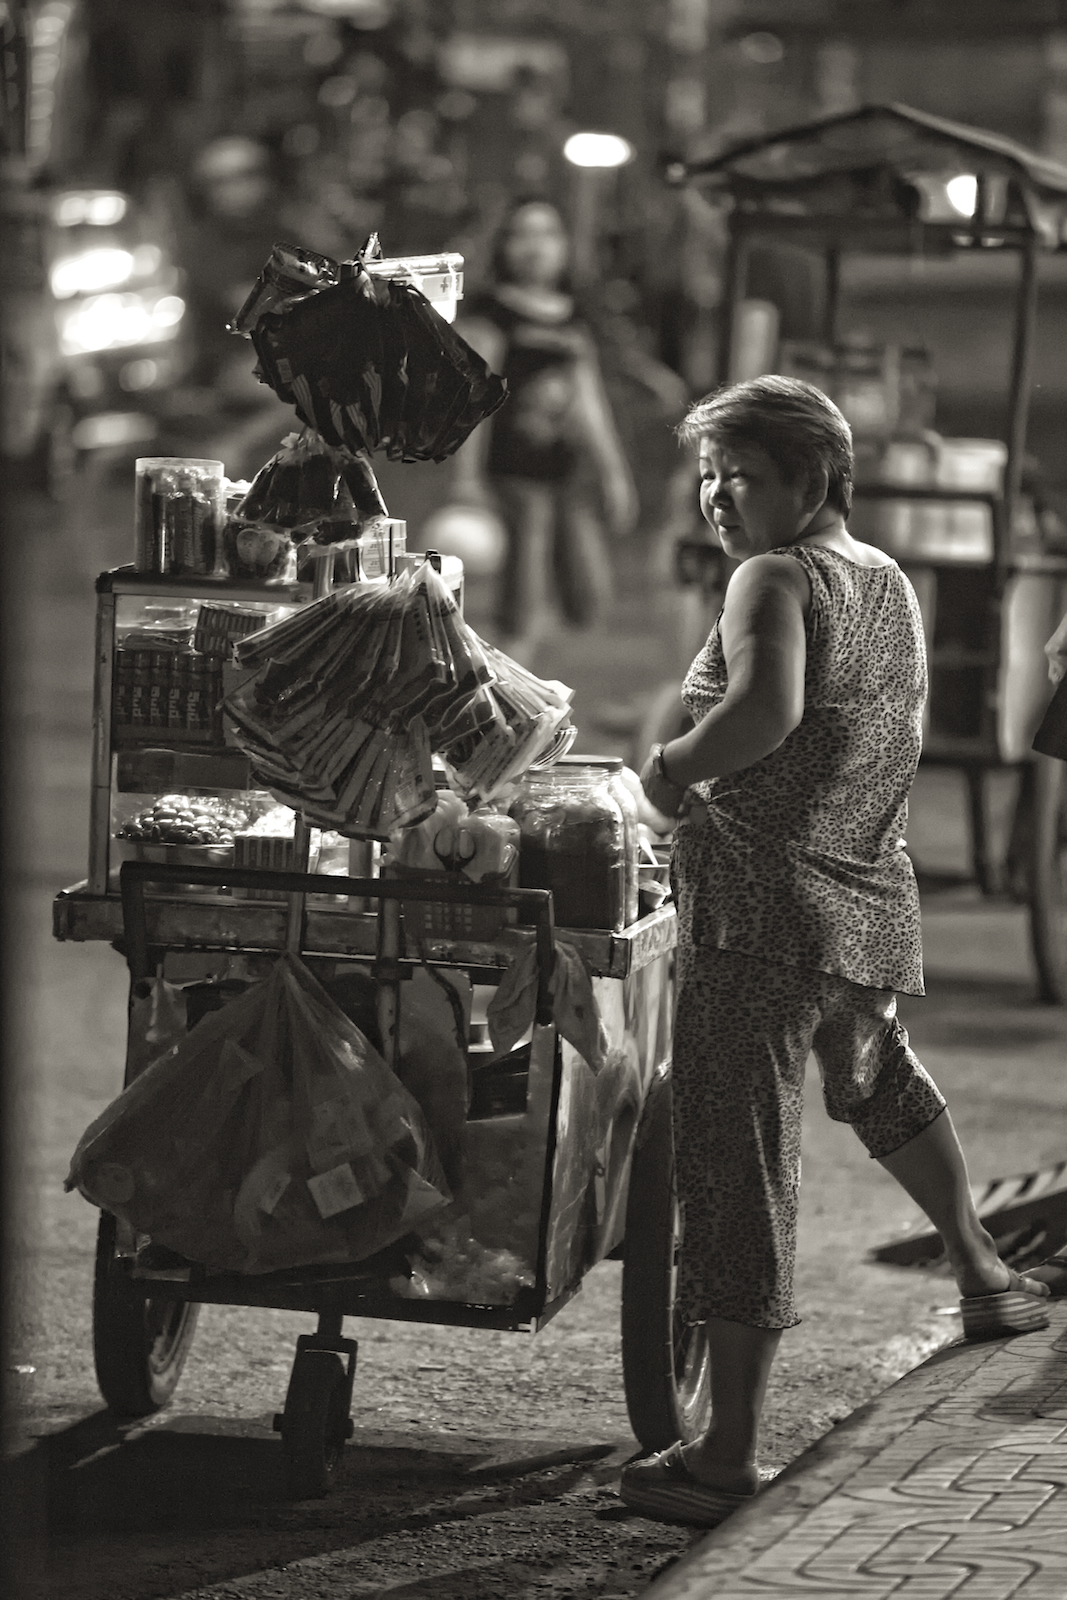 A woman sells dried fish from a cart in Ho Chi Minh City, Vietnam.  Image by New Orleans based travel photographer, Marc Pagani - marcpagani.com